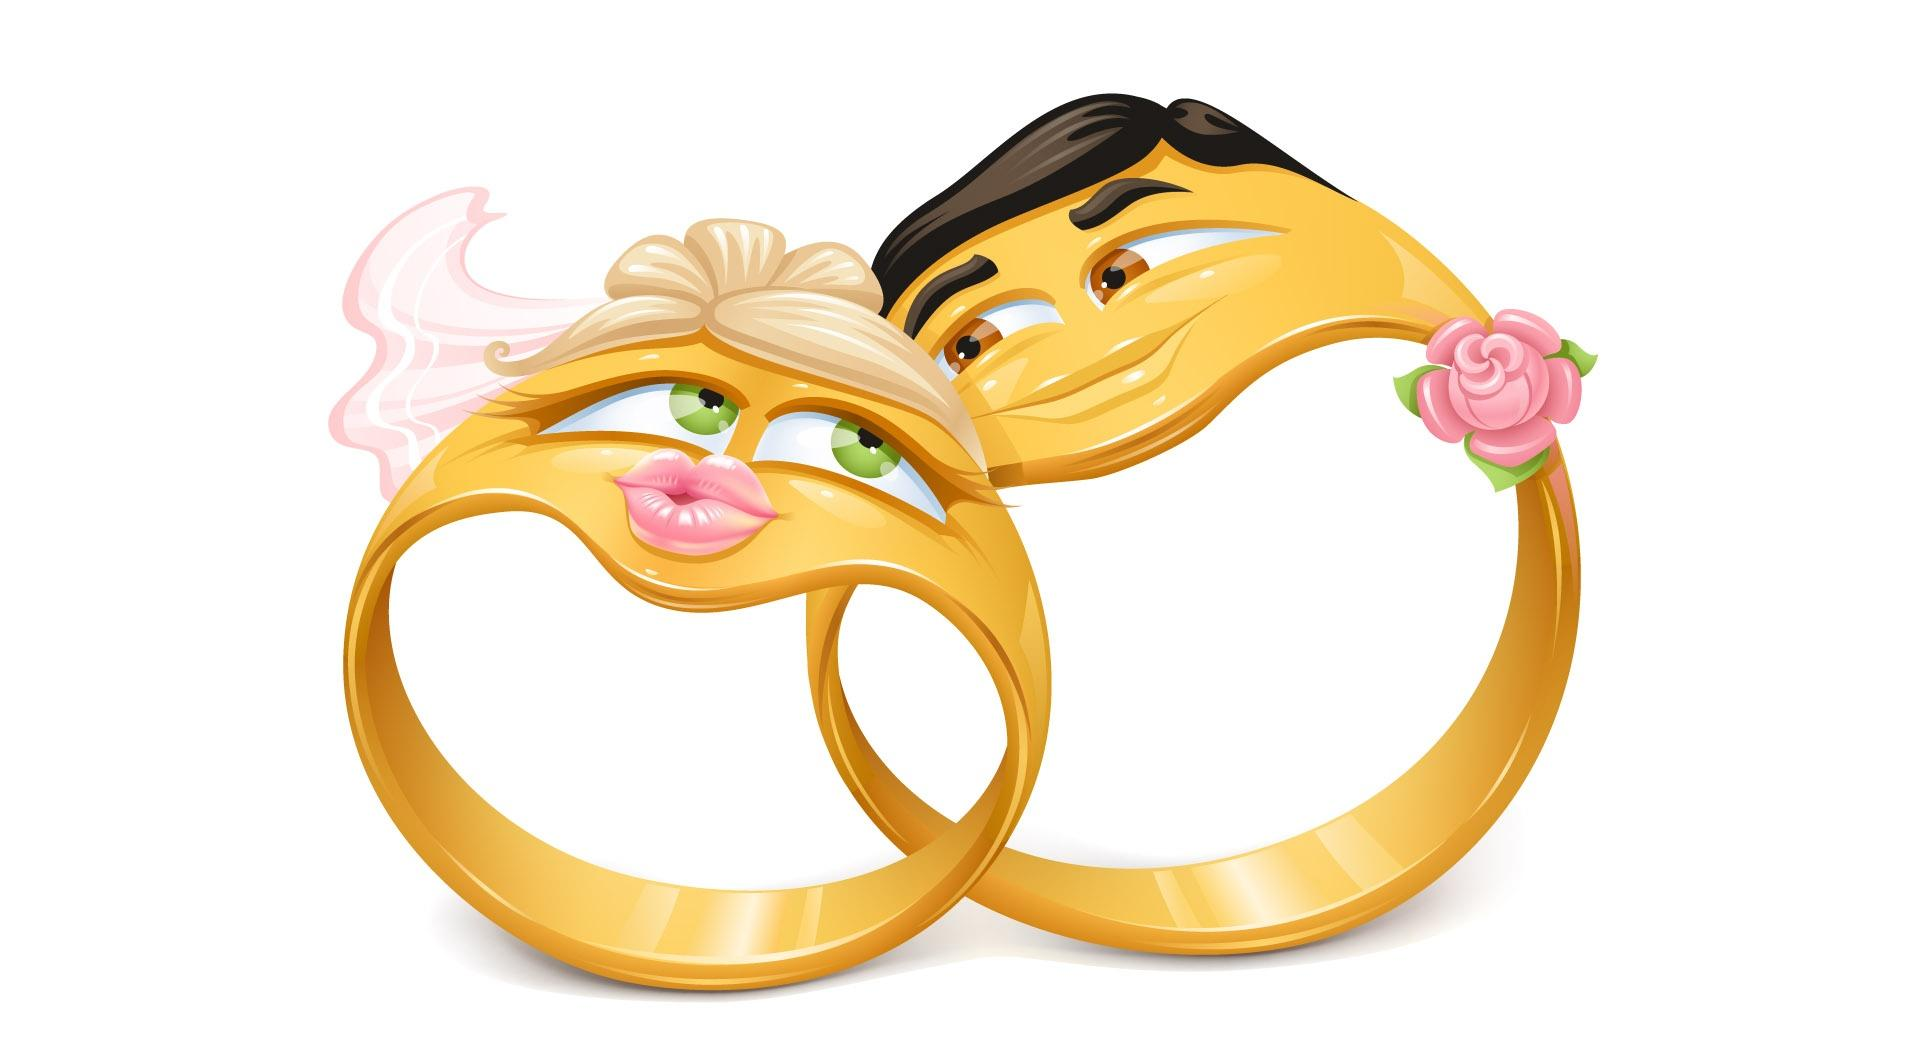 Wedding Rings at 1152 x 864 size wallpapers HD quality